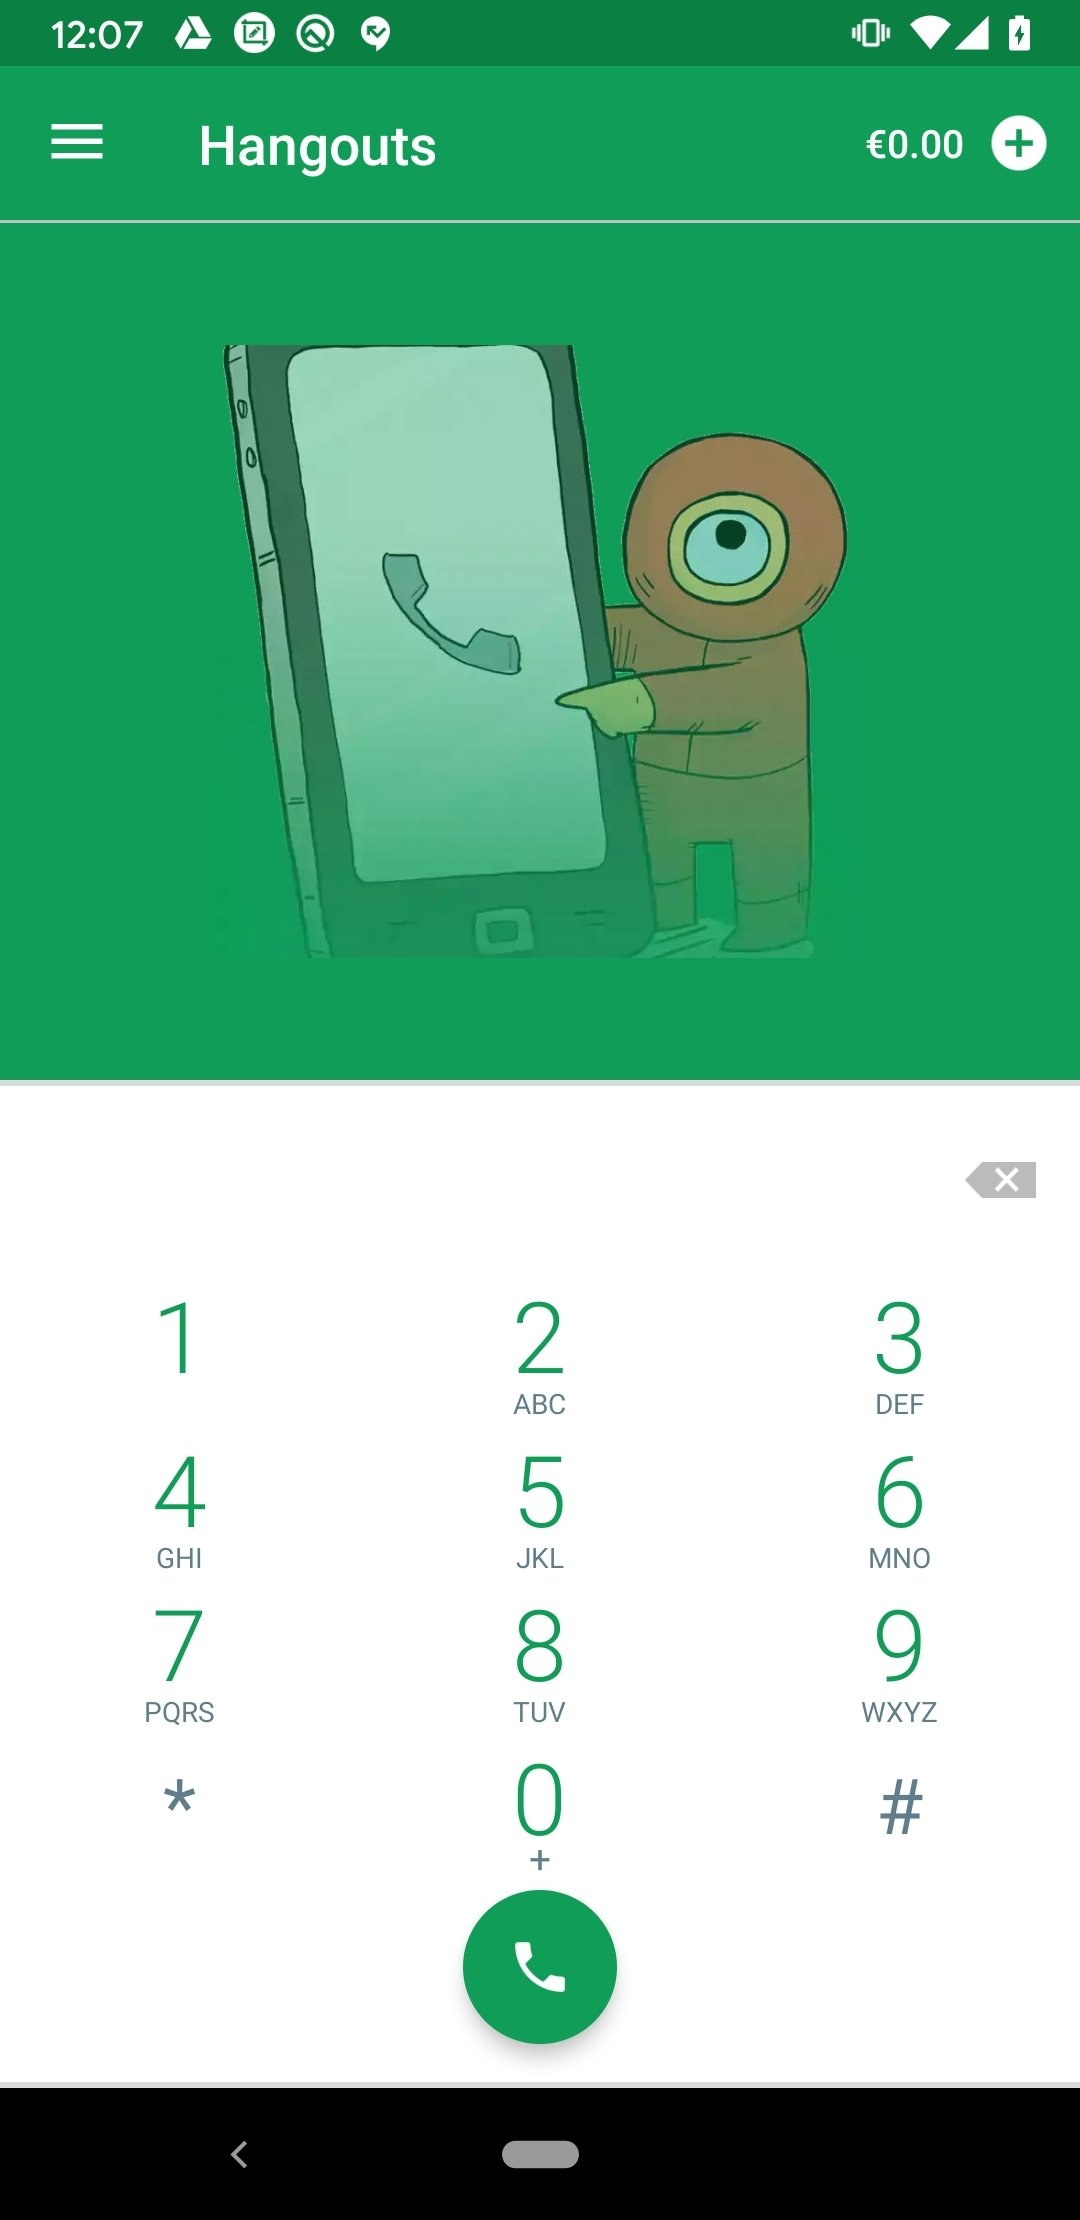 Hangouts Dialer Android image 5